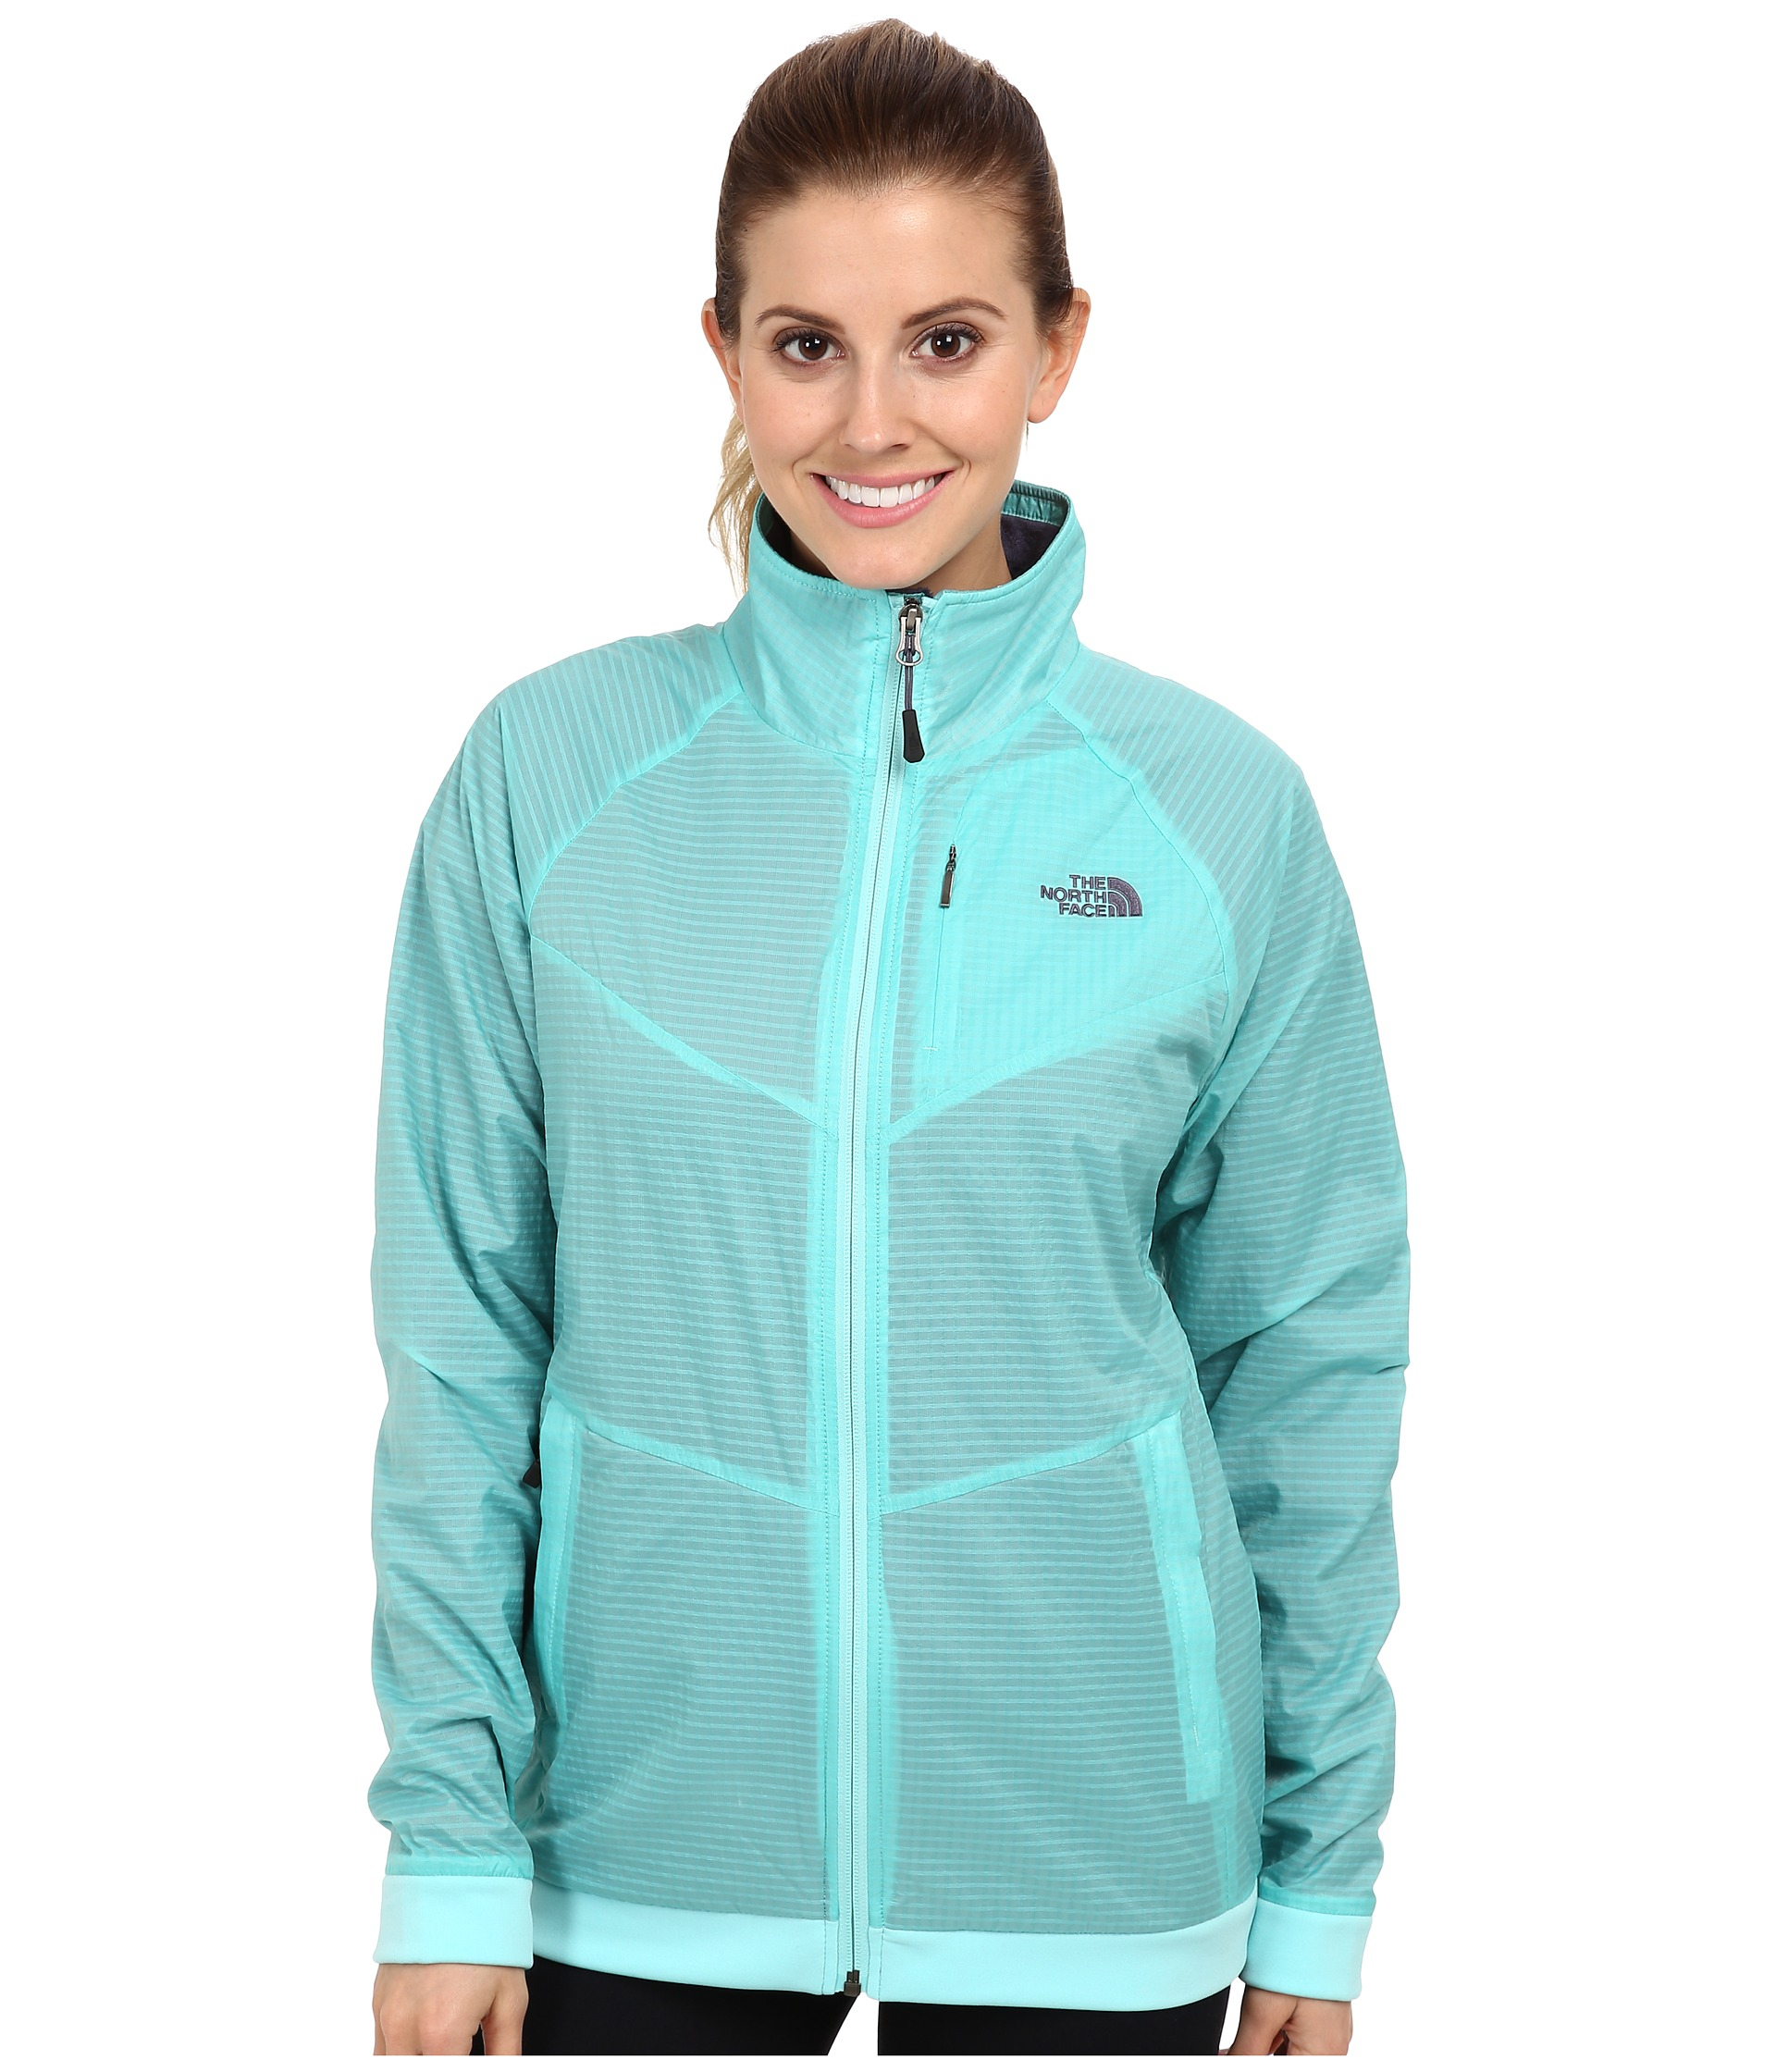 olancha women The north face outlet store backpacks water blue outlet tnf8409 sale the north face backpack pinterest north face outlet outlet store and the north face,north face sale uk,the north face rab.